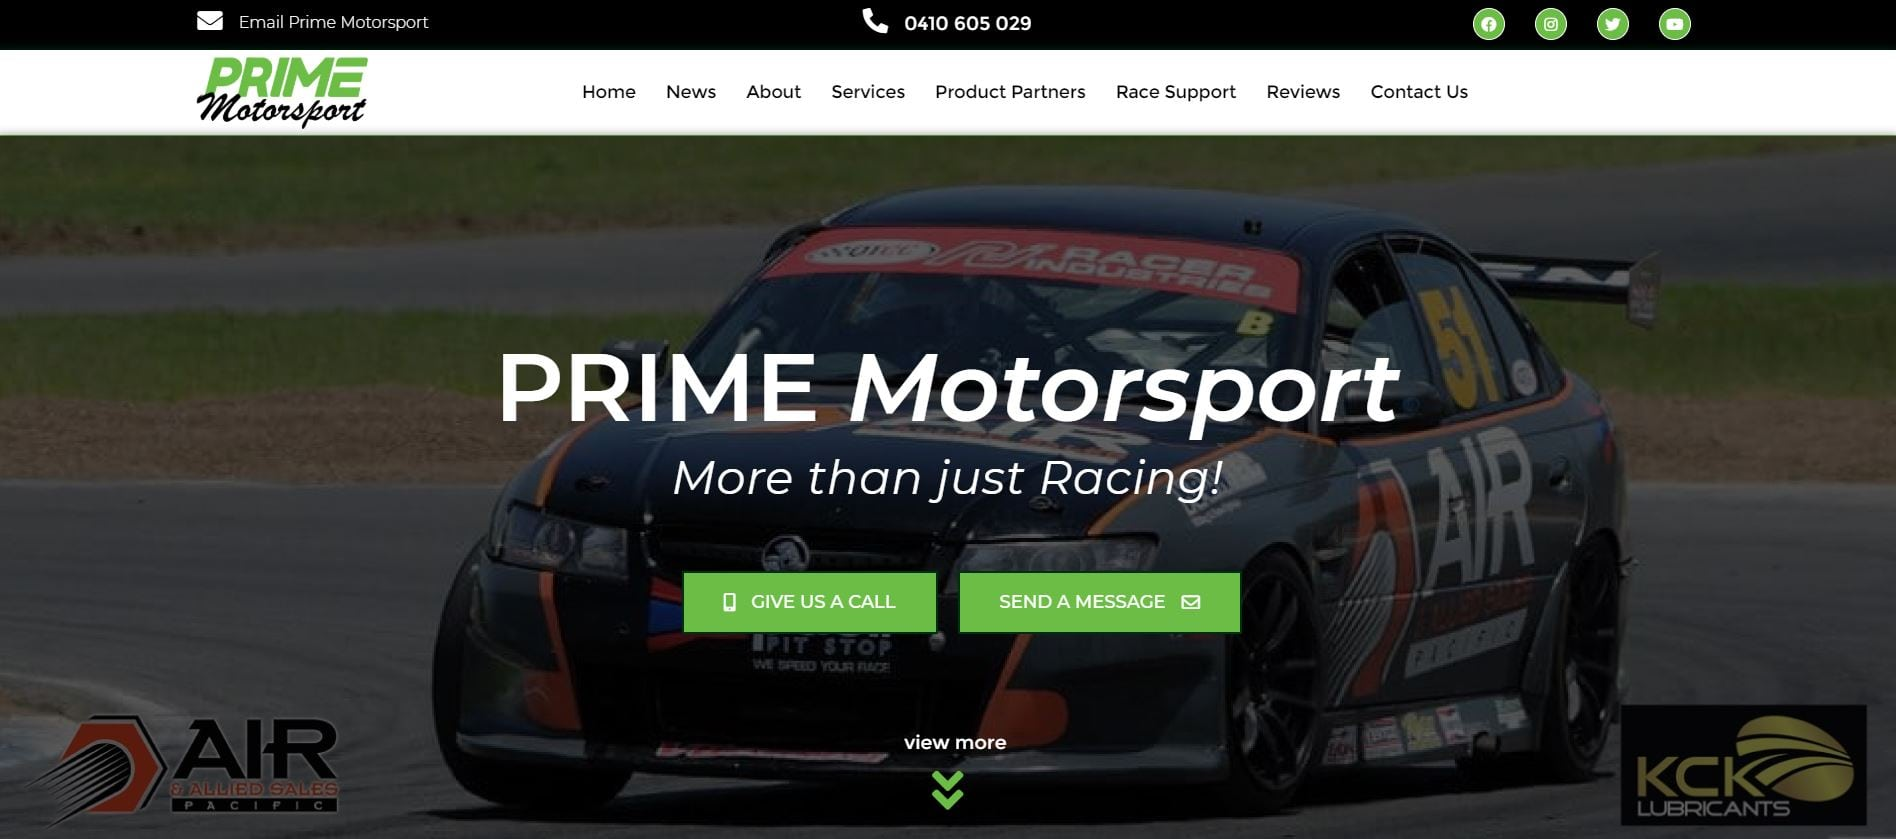 Prime Motorsport website home page image